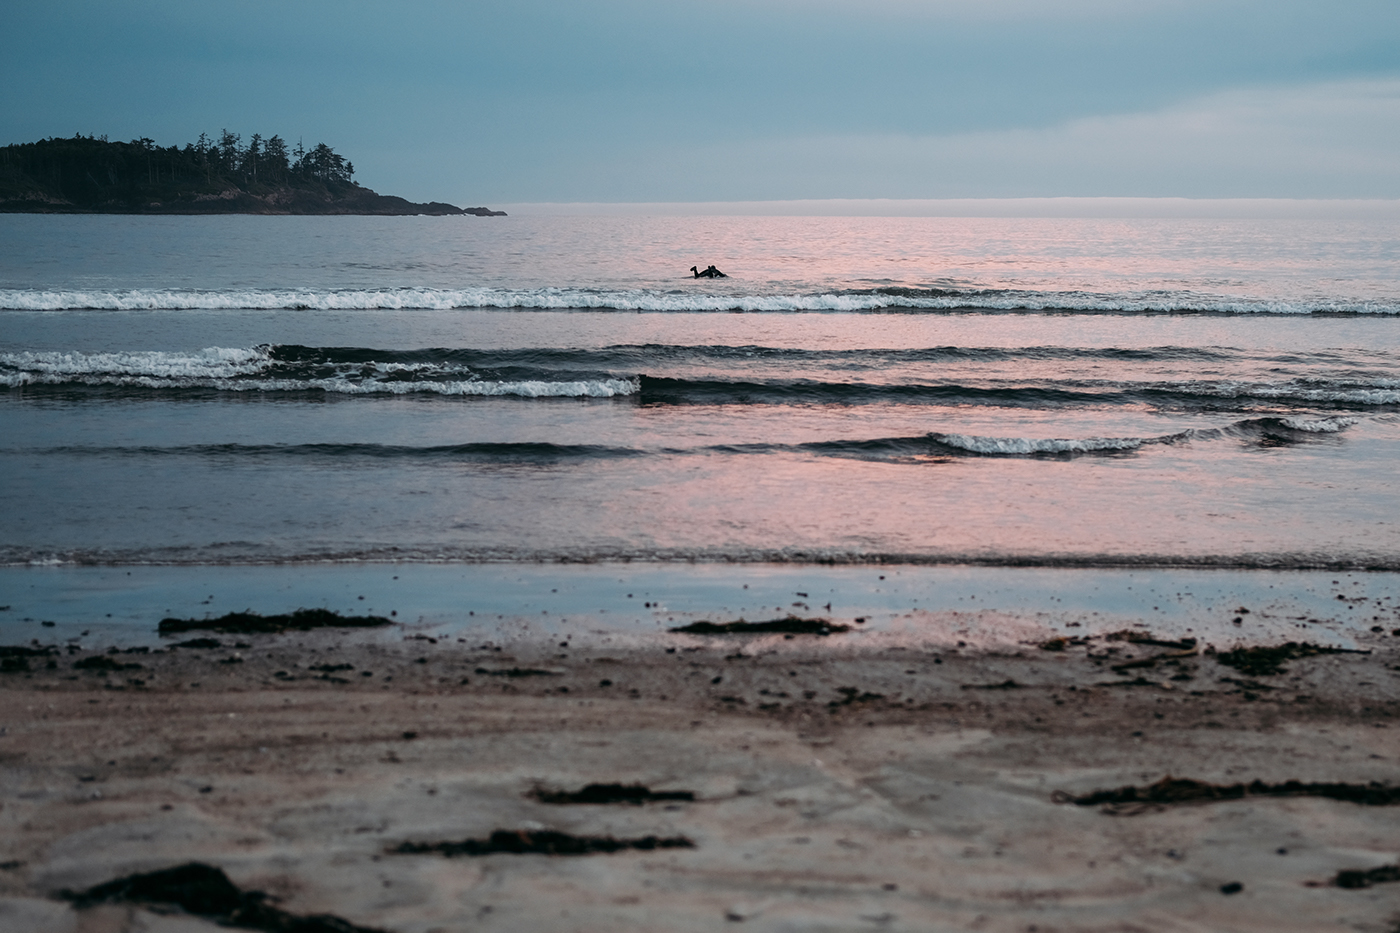 tofino Canada british columbia surfing Ocean Photography  Video Editing cinematography color grading photoshop